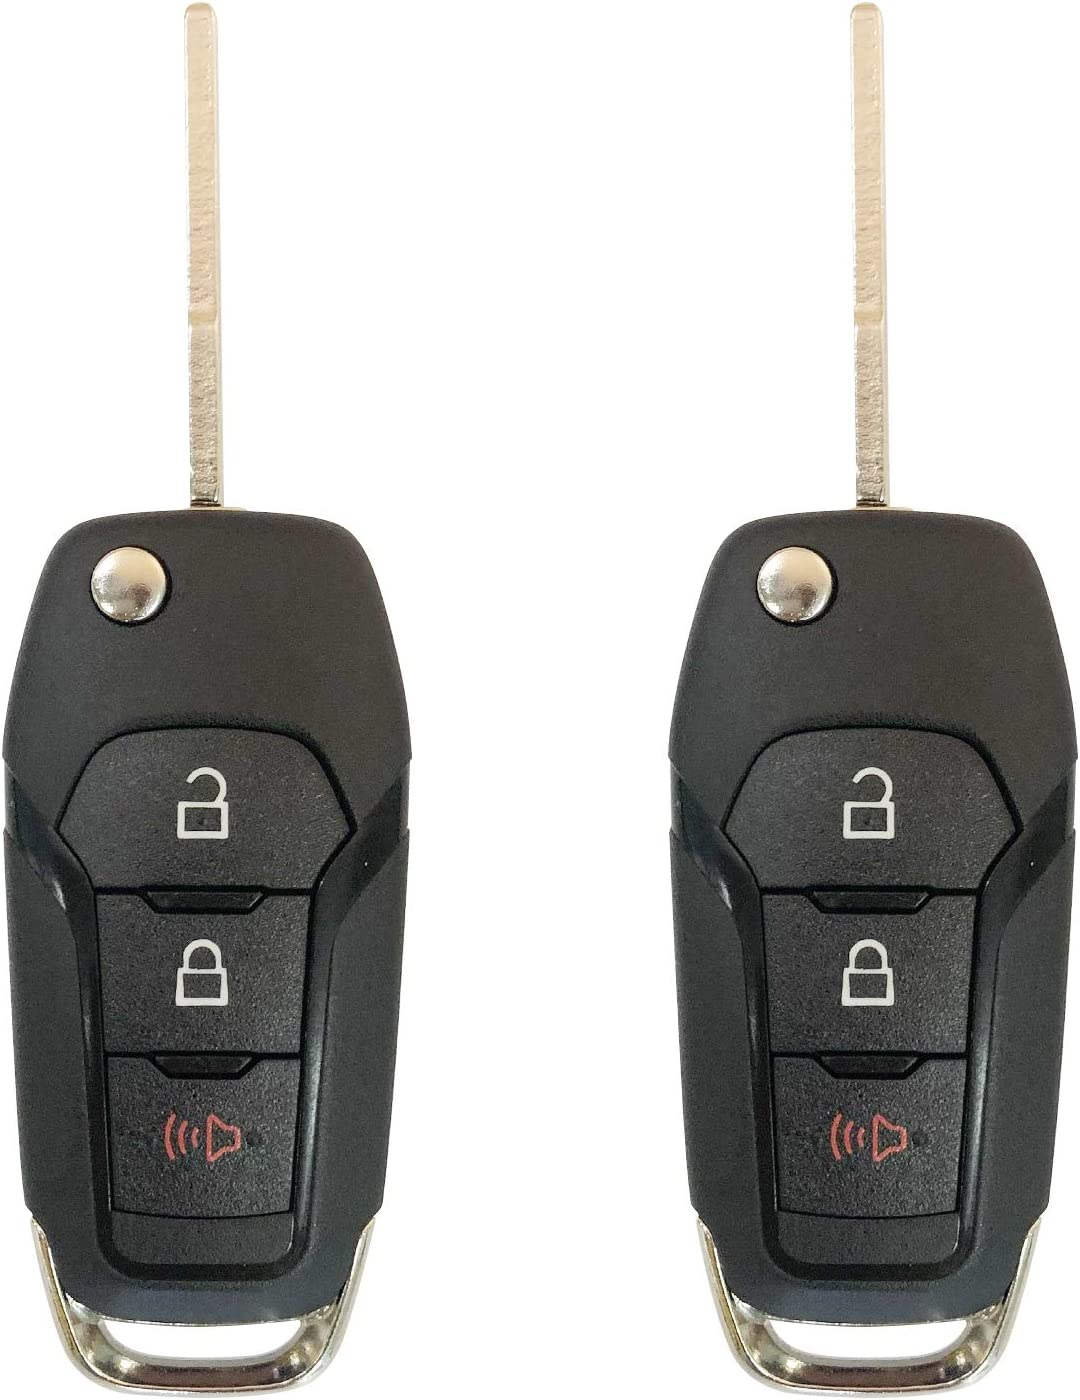 Replacement for  Ford F 150 250 350 Key Entry Fob Car Remote Start Non OEM